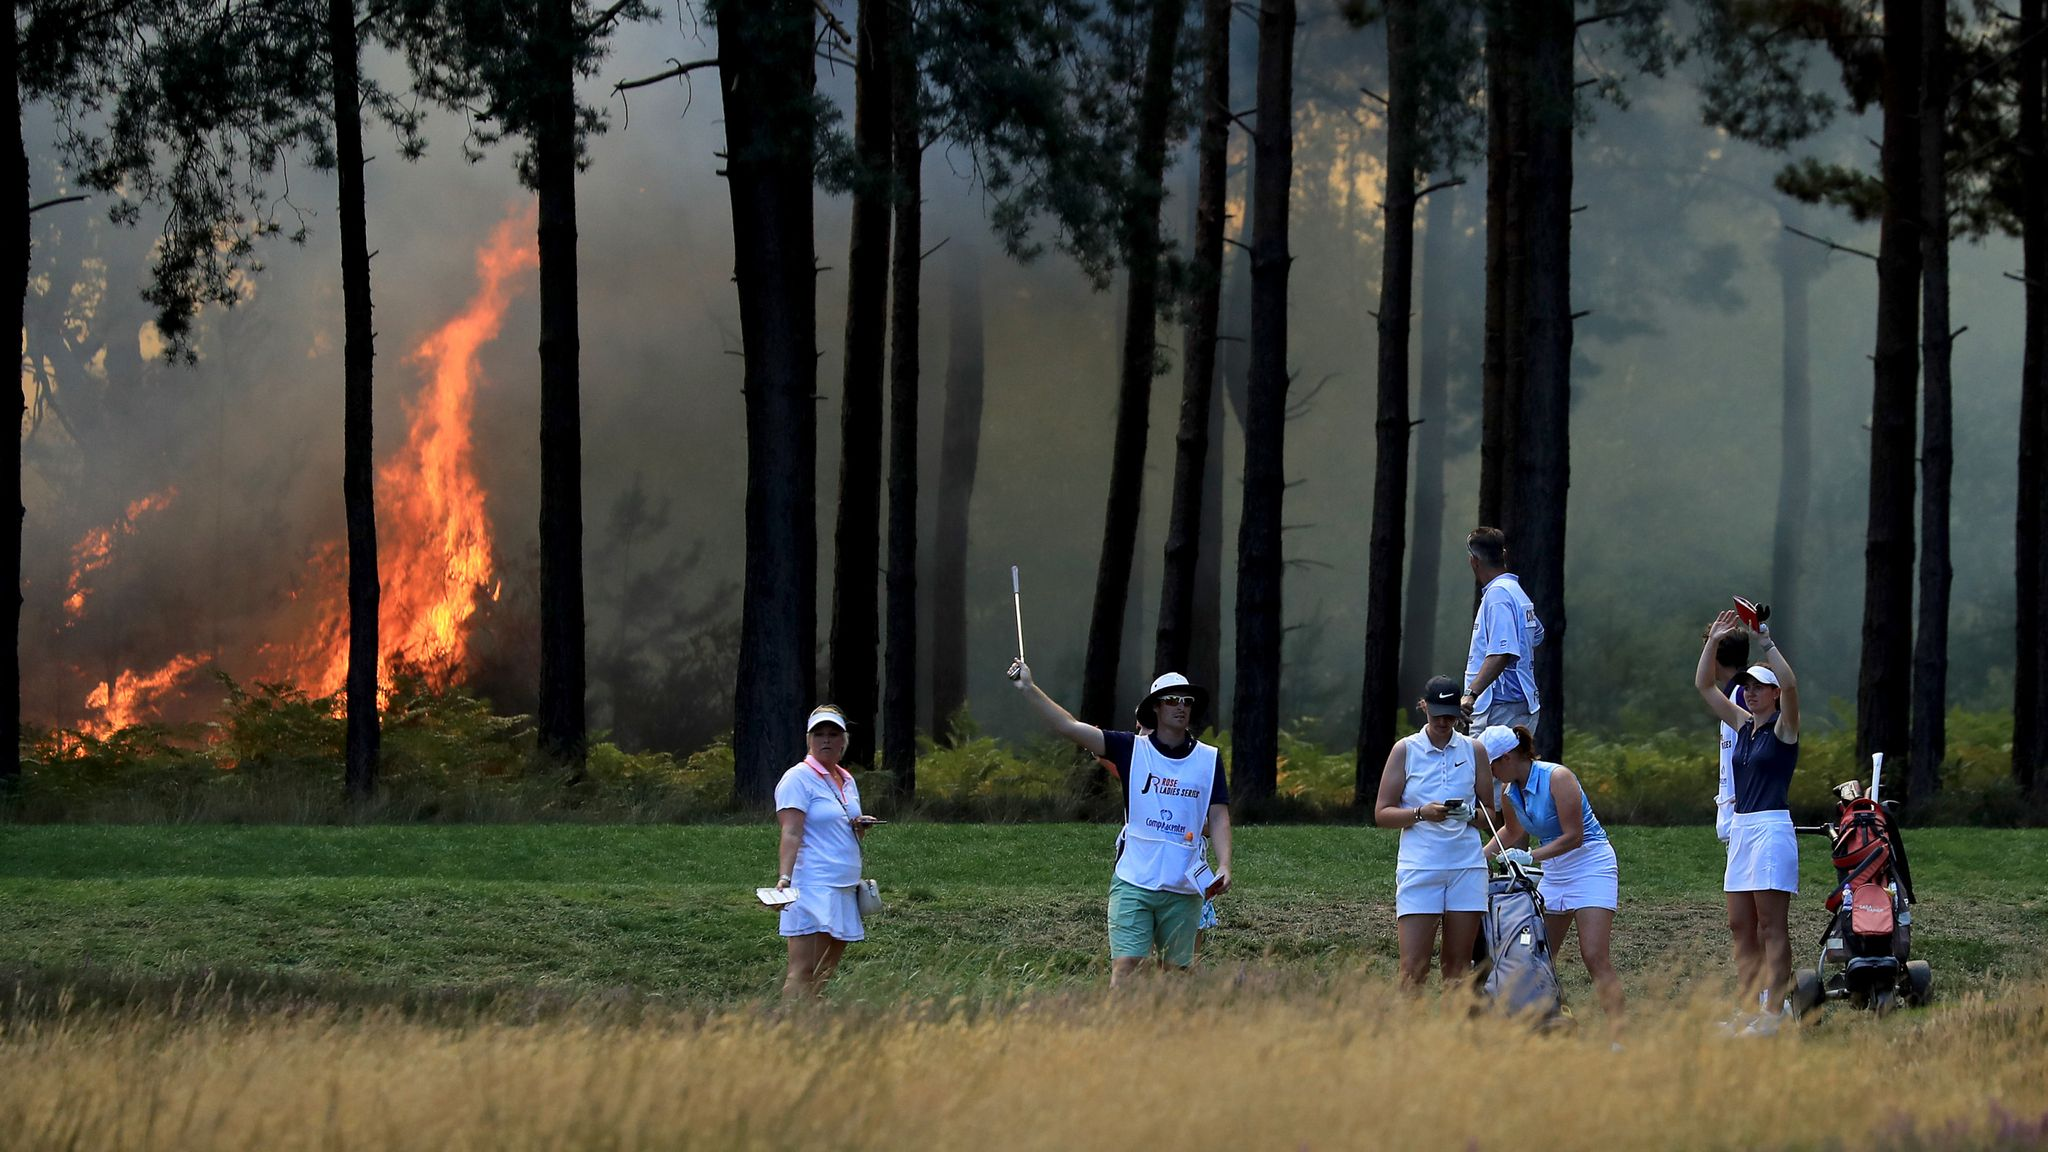 Fire At Wentworth A Timeline Of Events Video Watch Tv Show Sky Sports